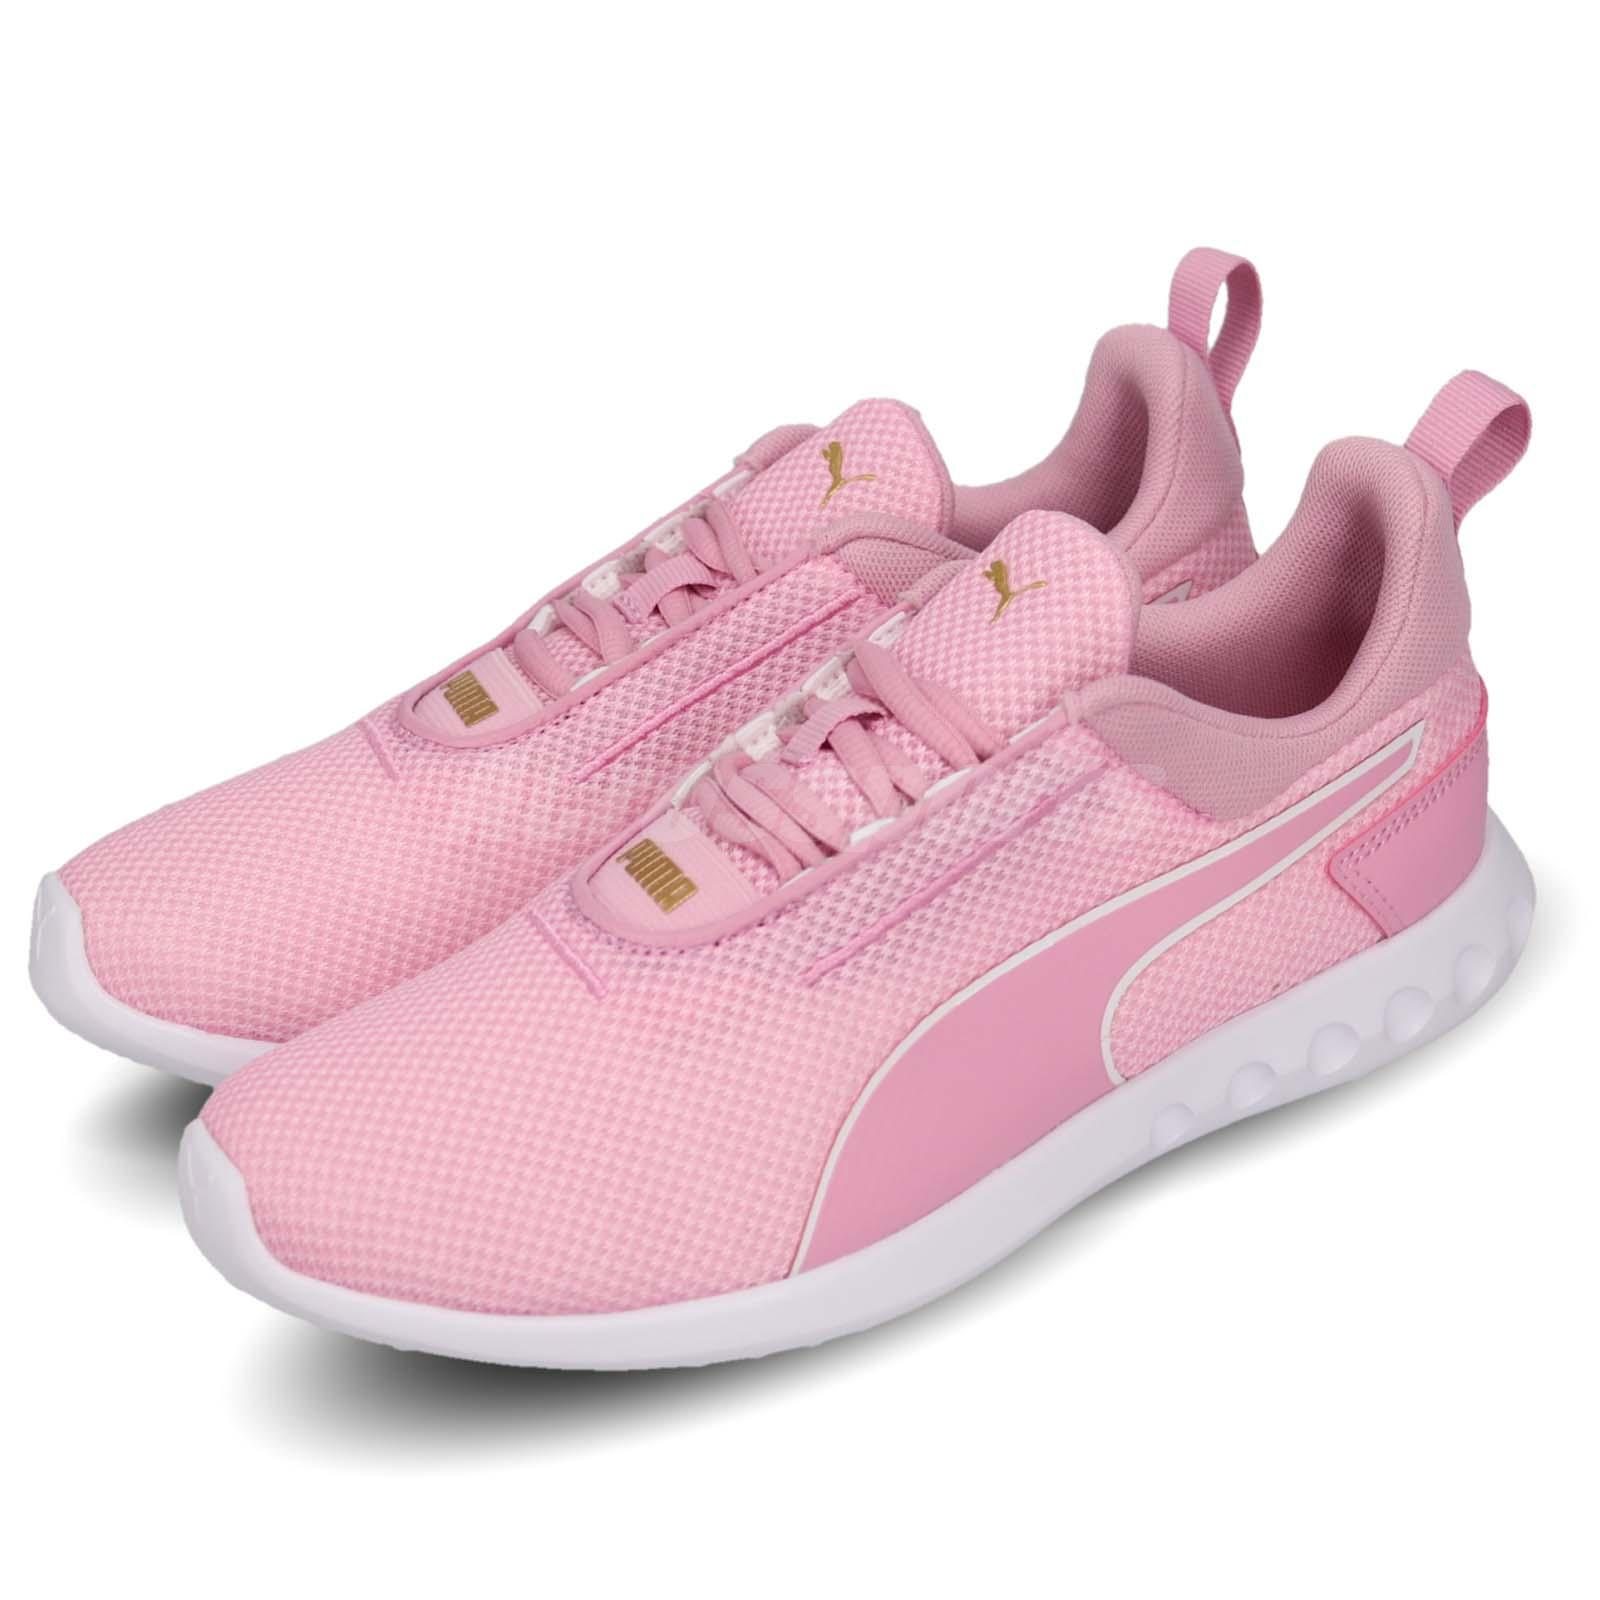 8b84d60675 Details about Puma Carson 2 Concave Wns Pale Pink White Women Running Shoes  Sneakers 192504-03